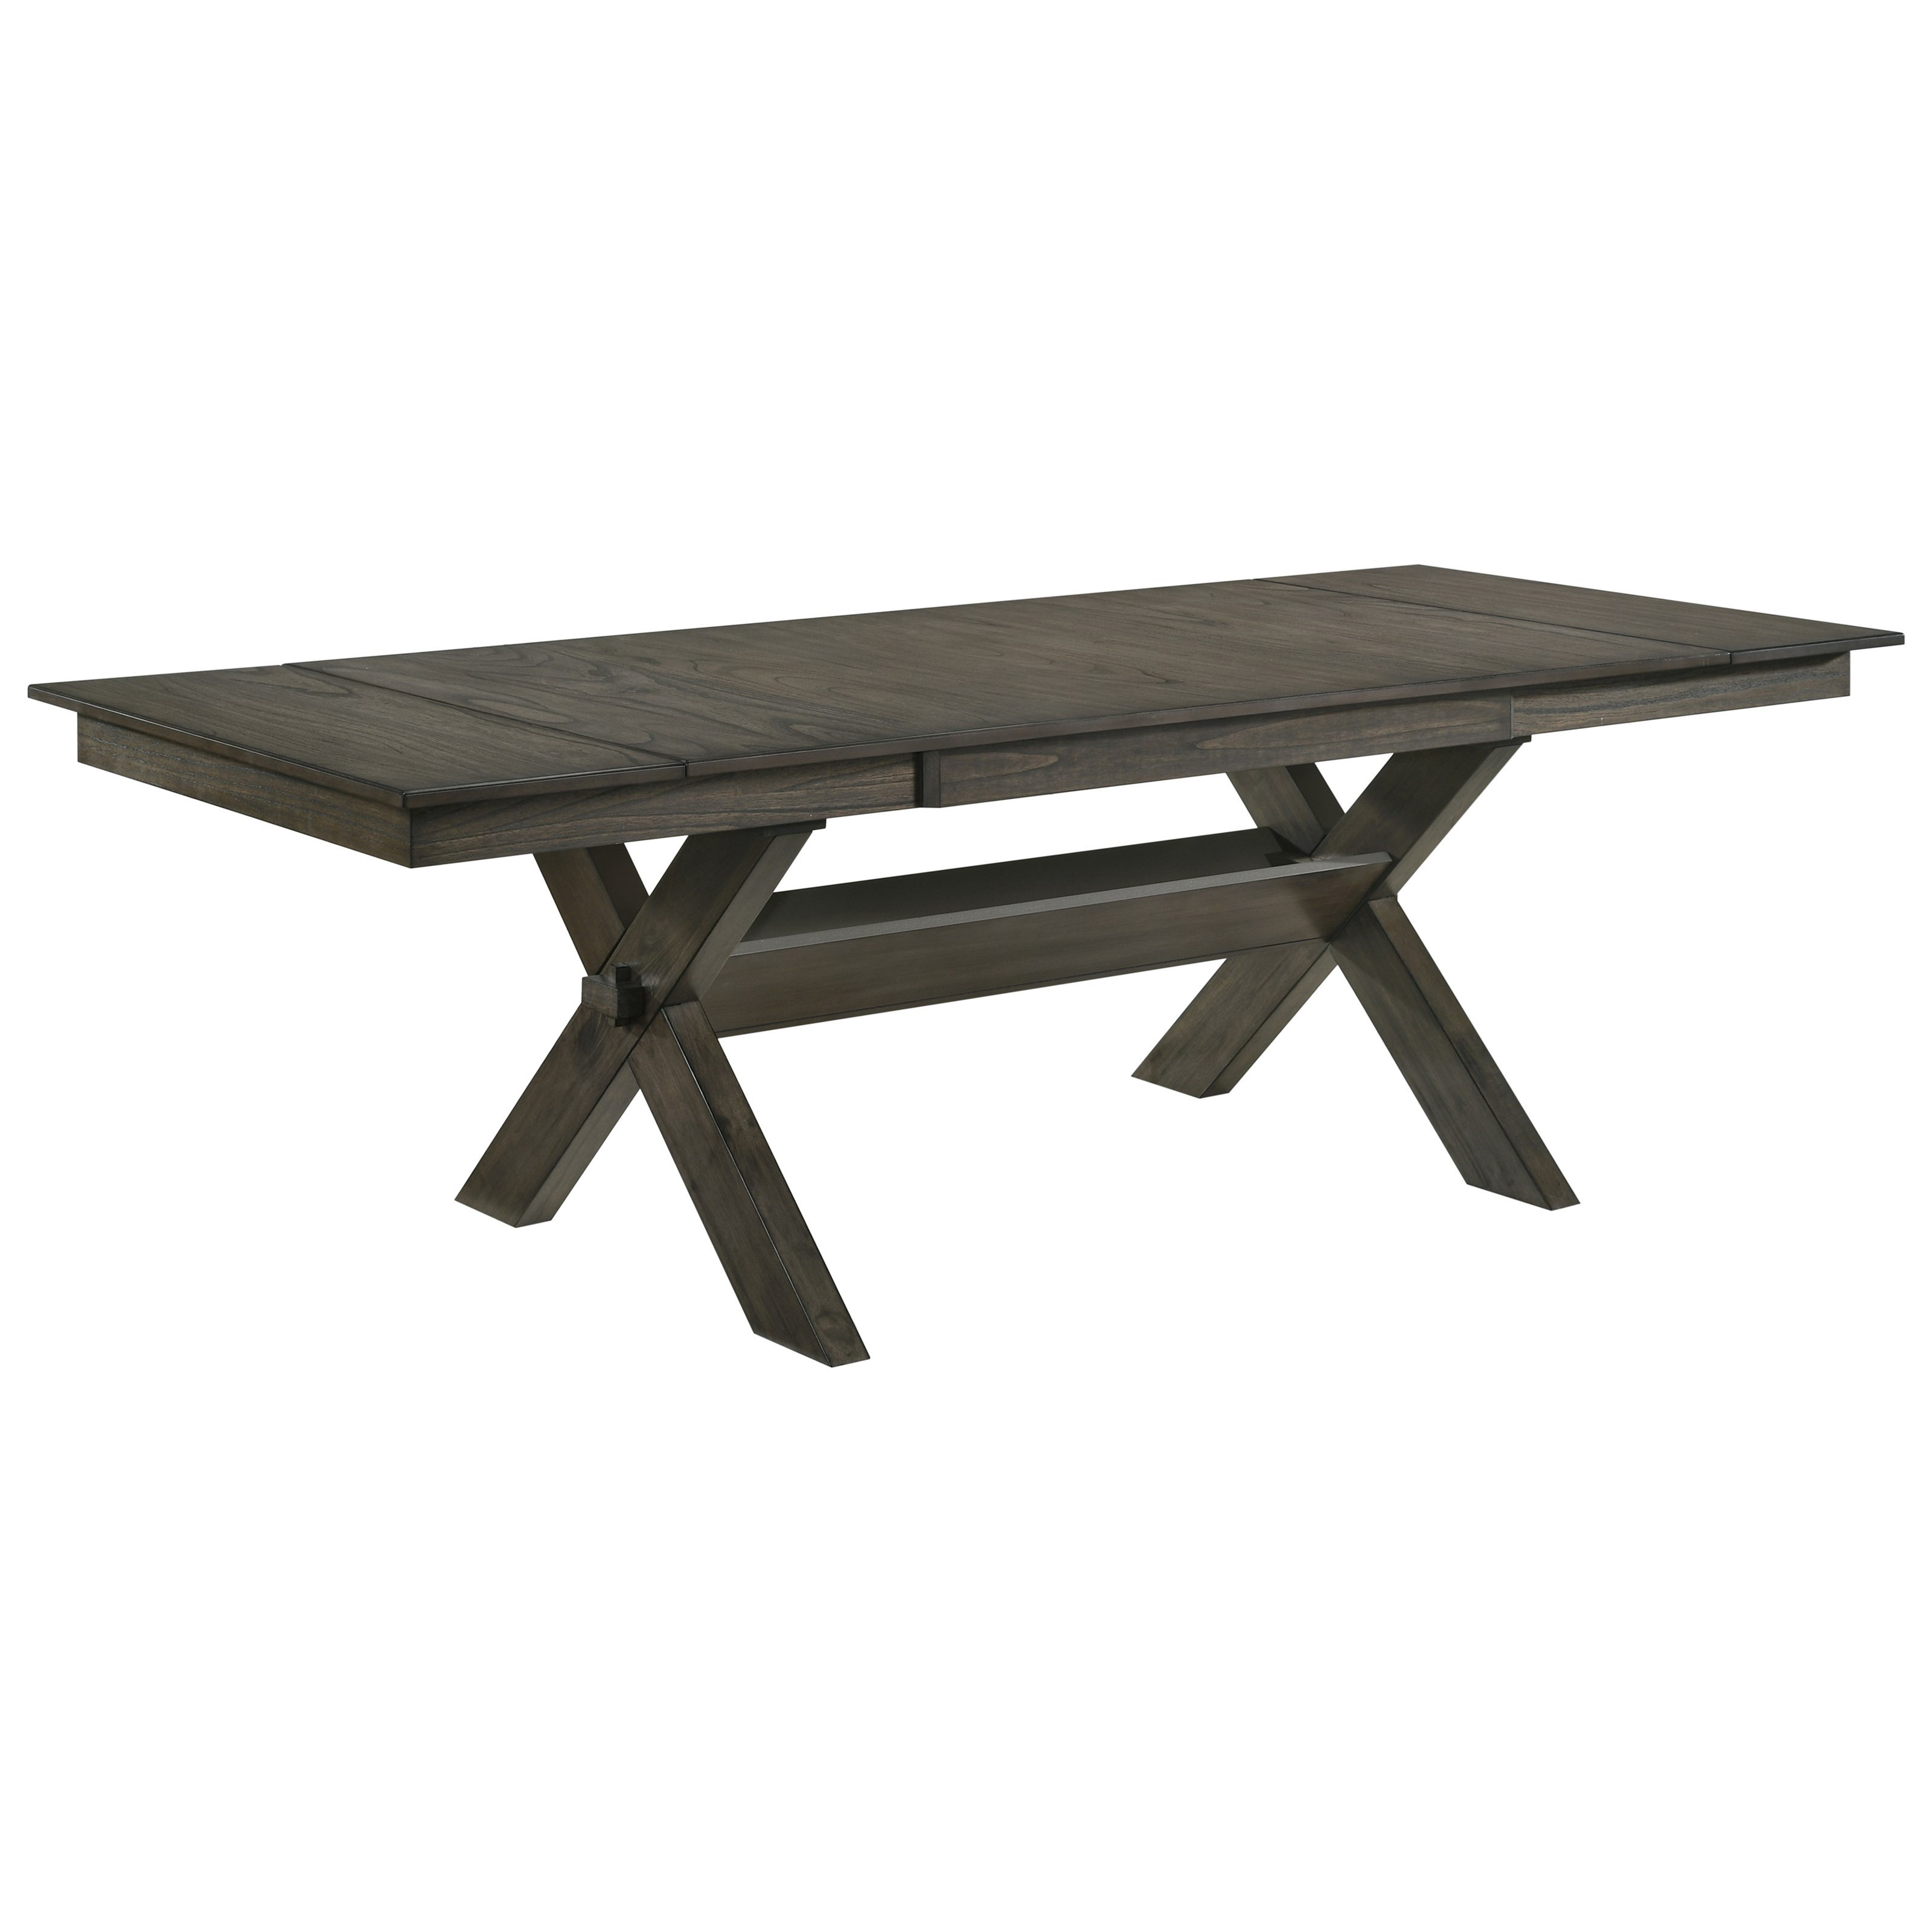 Gulliver Dining Table by New Classic at H.L. Stephens